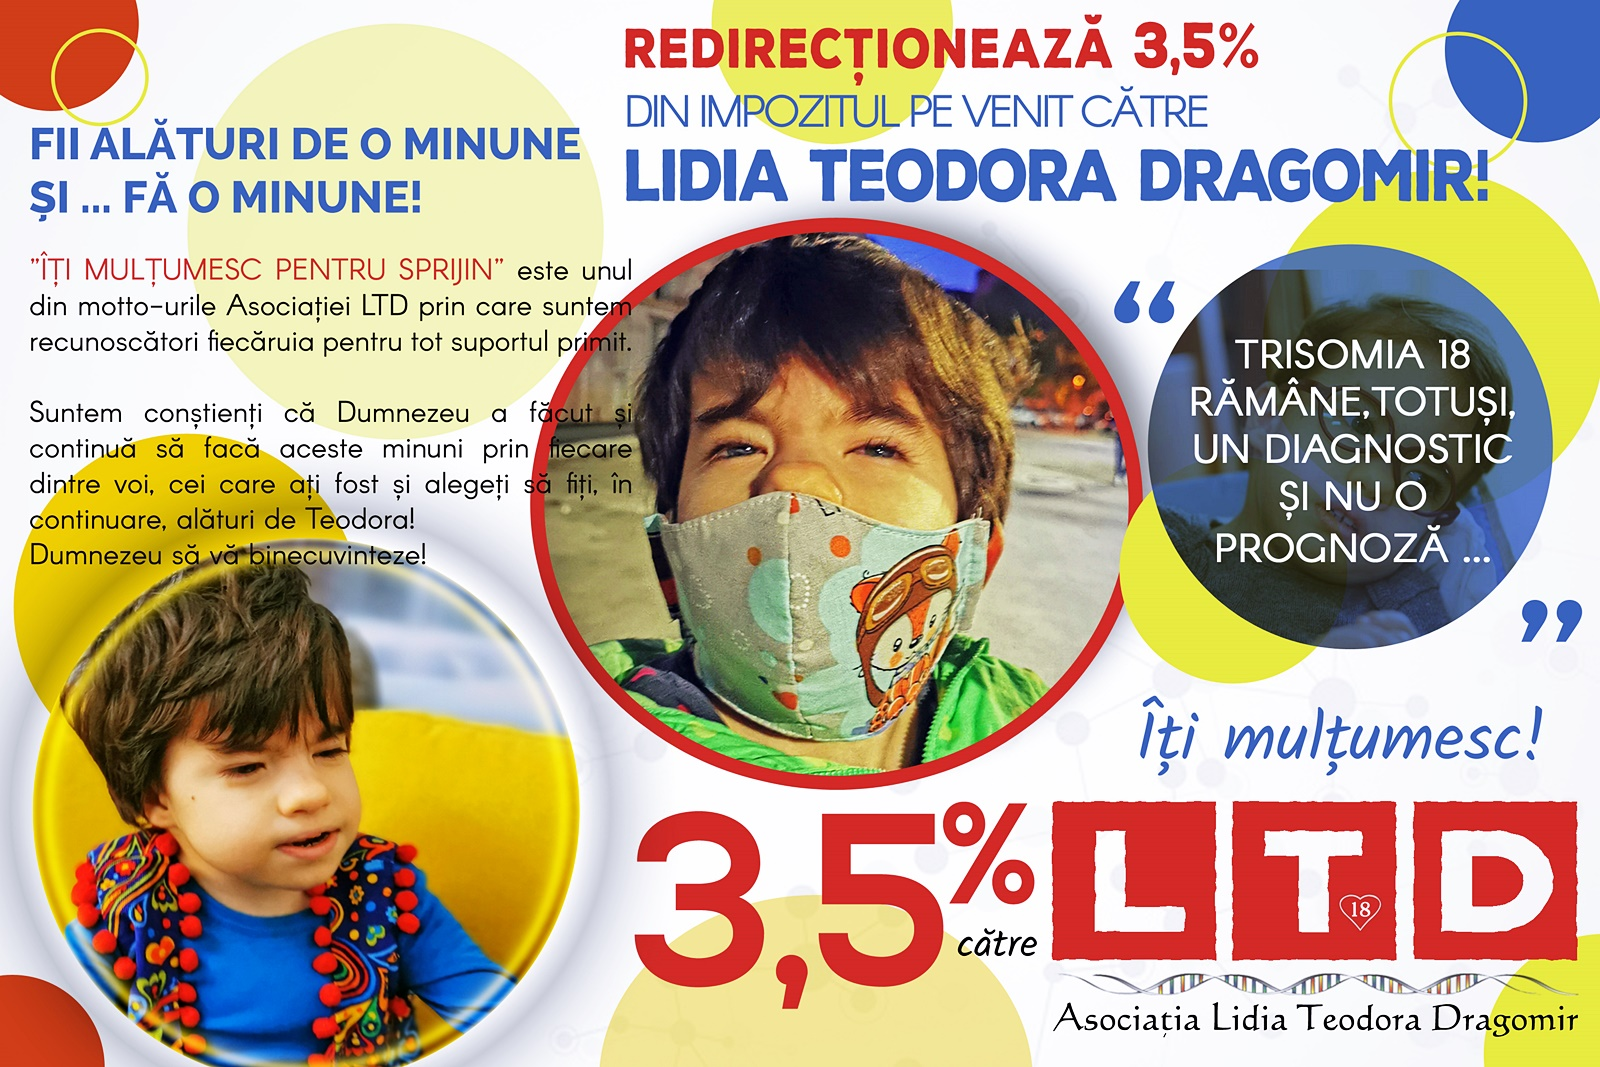 Redirectioneaza 35 catre As LTD 2020